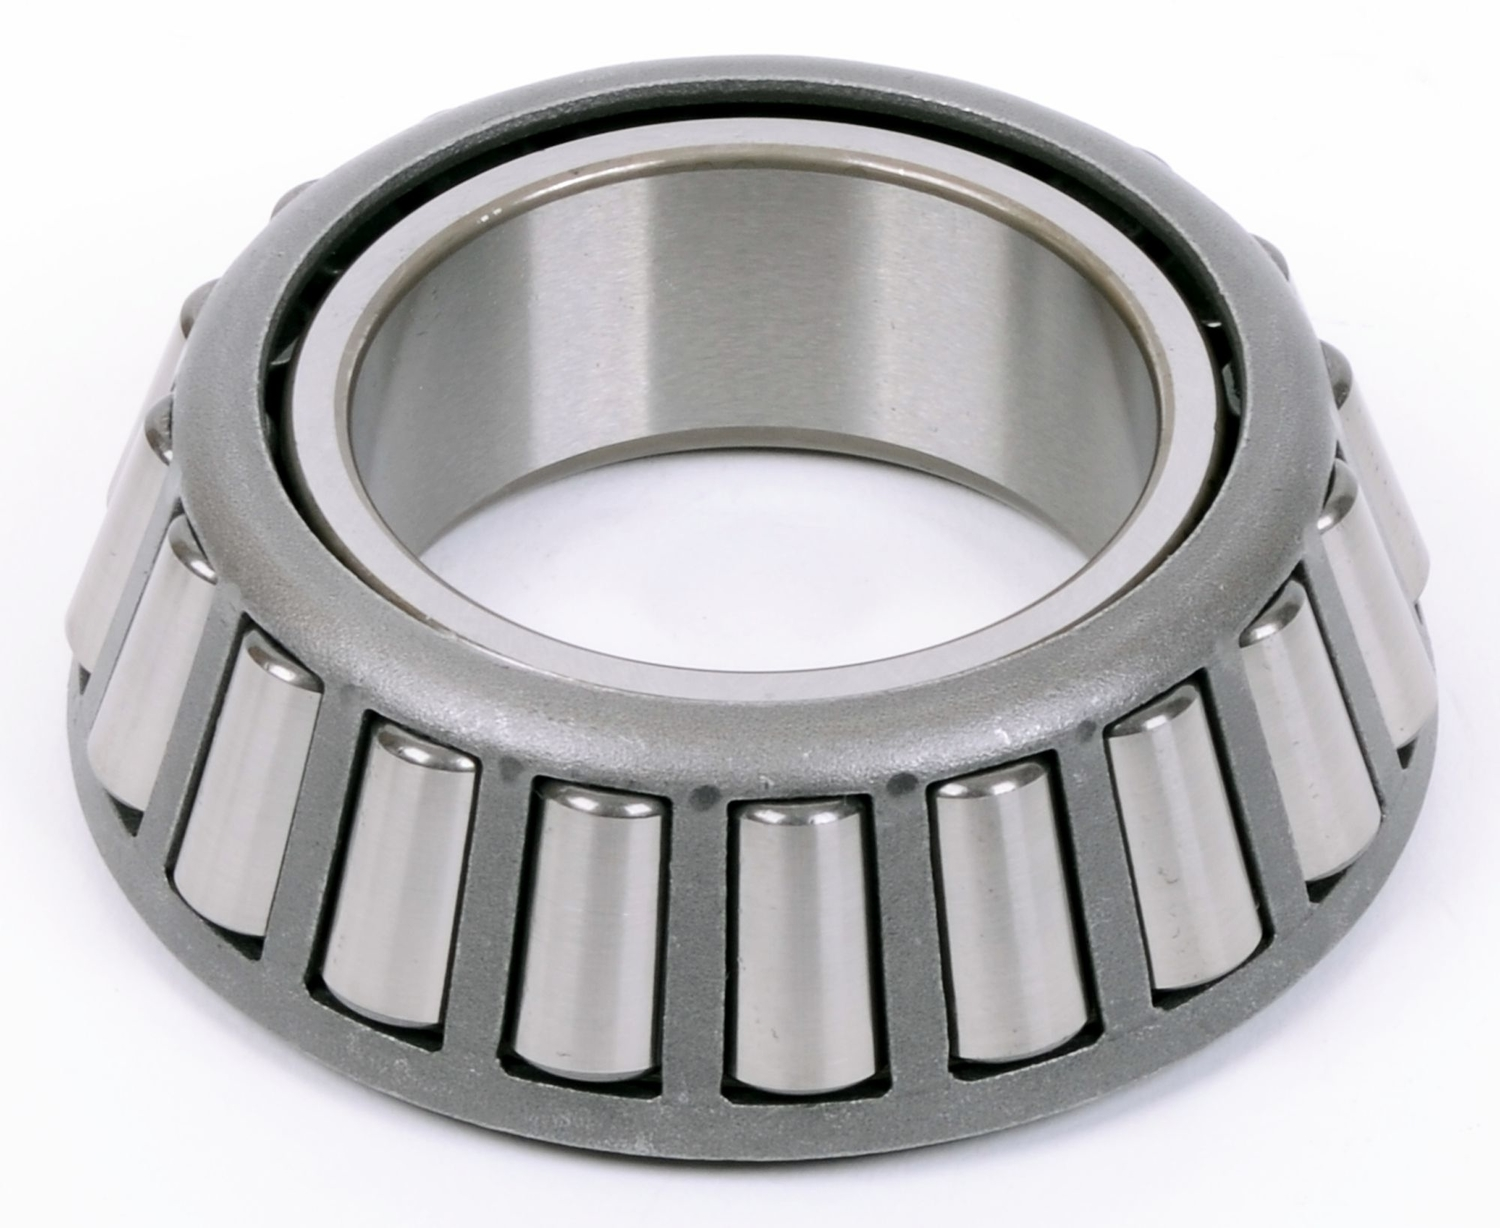 SKF (CHICAGO RAWHIDE) - Manual Trans Countershaft Bearing (Front) - SKF M804049